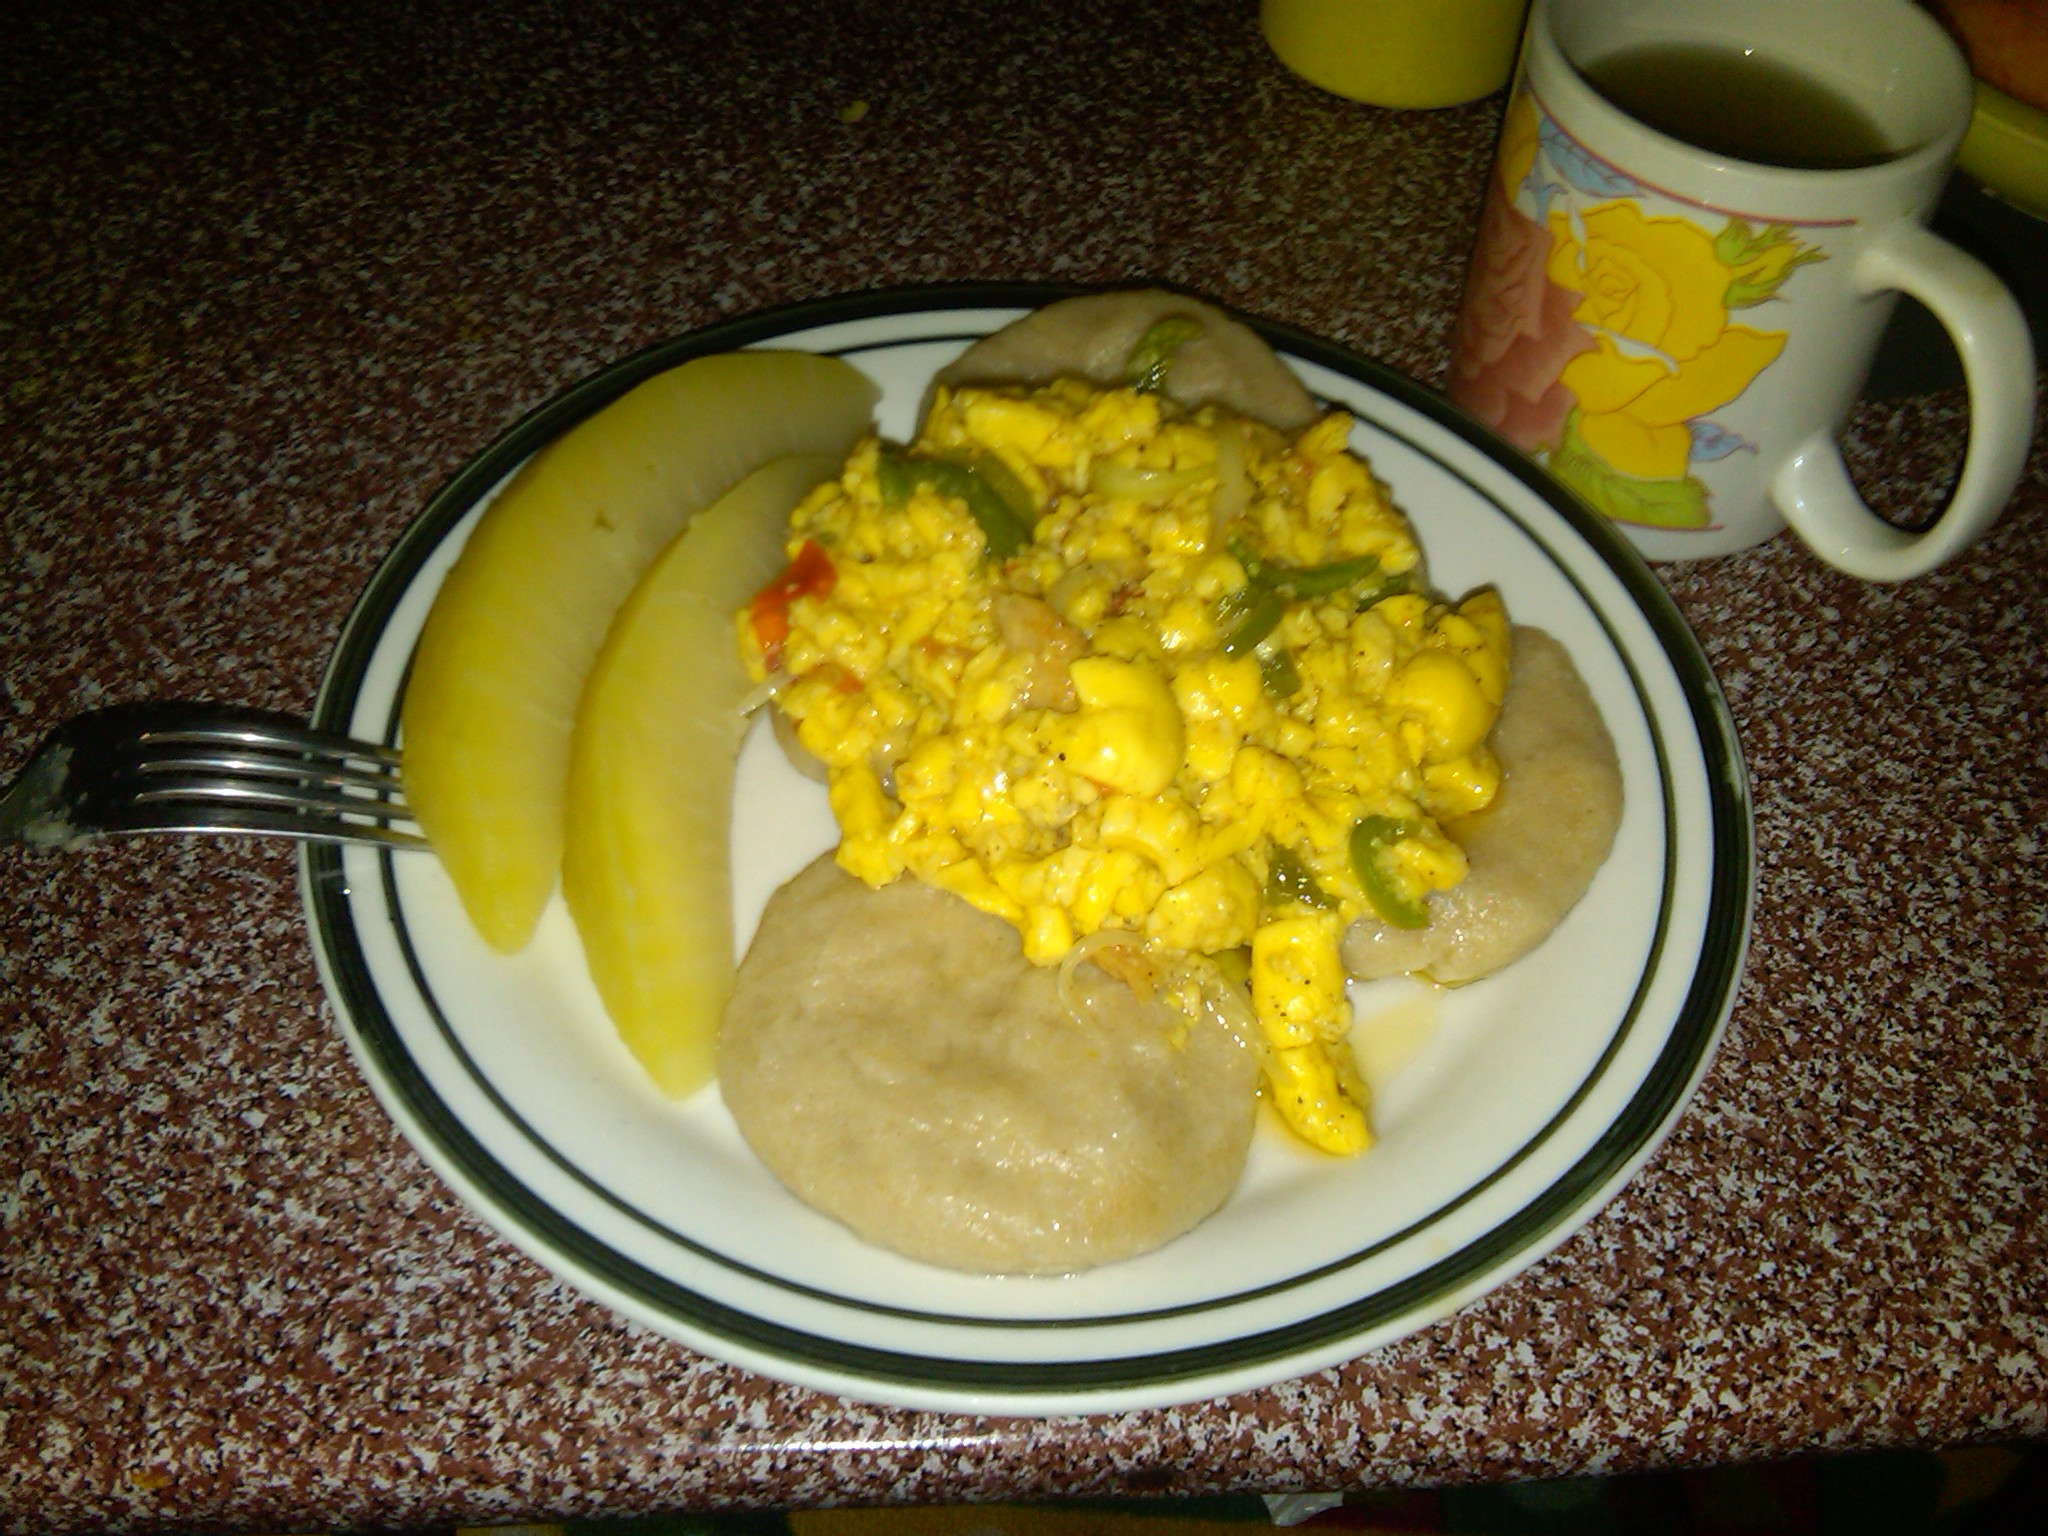 Breadfruit ackee dumplings a taste of home jamaica for About caribbean cuisine